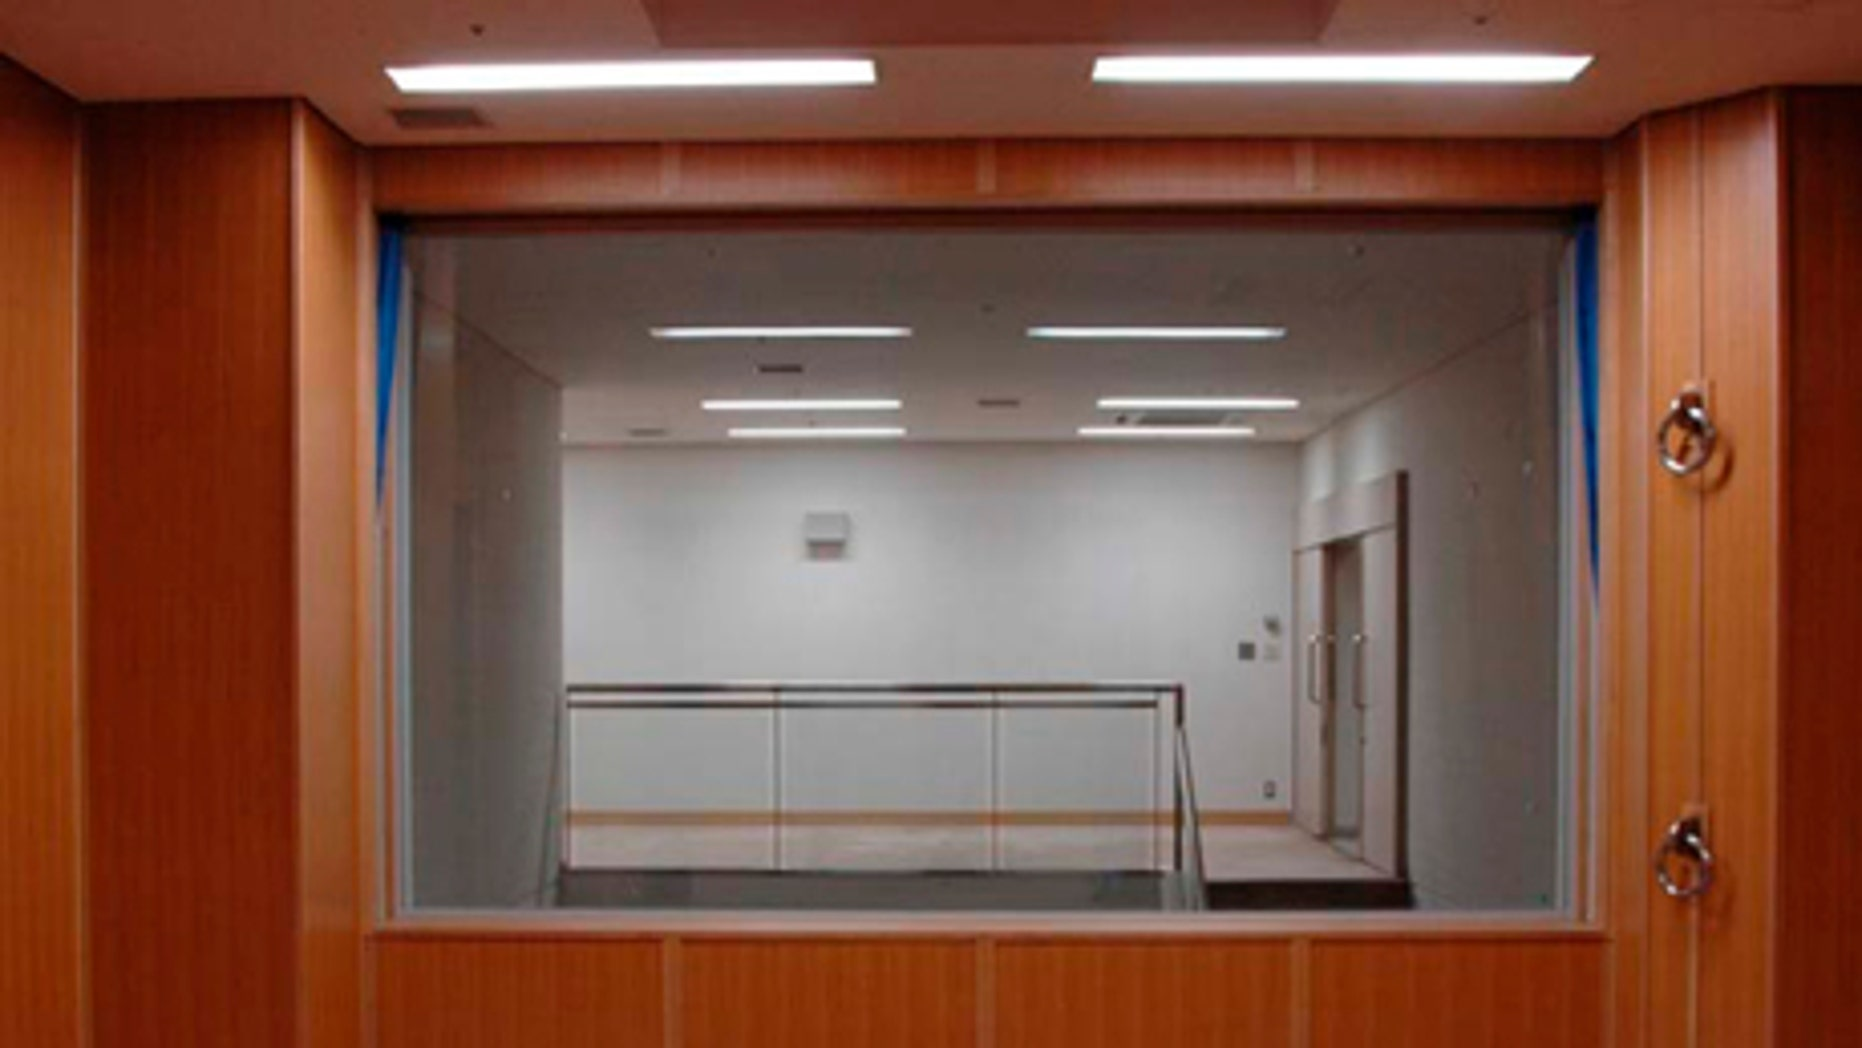 In this photo taken and released on  by Japan's Justice Ministry, the trapdoor where a condemned criminal is to stand is marked with a red double square on the floor in an execution room at Tokyo Detention Center when the local media are allowed a rare tour of Tokyo's main gallows in a bid to create more public awareness about capital punishment. Three death row inmates in Japan were executed by hanging on Thursday, March 29, 2012, the country's first executions in more than a year and a half. Japan, along with the United States, is one of the few industrialized countries that still has capital punishment. The room behind the glass window is for witnesses to stand and observe the execution.